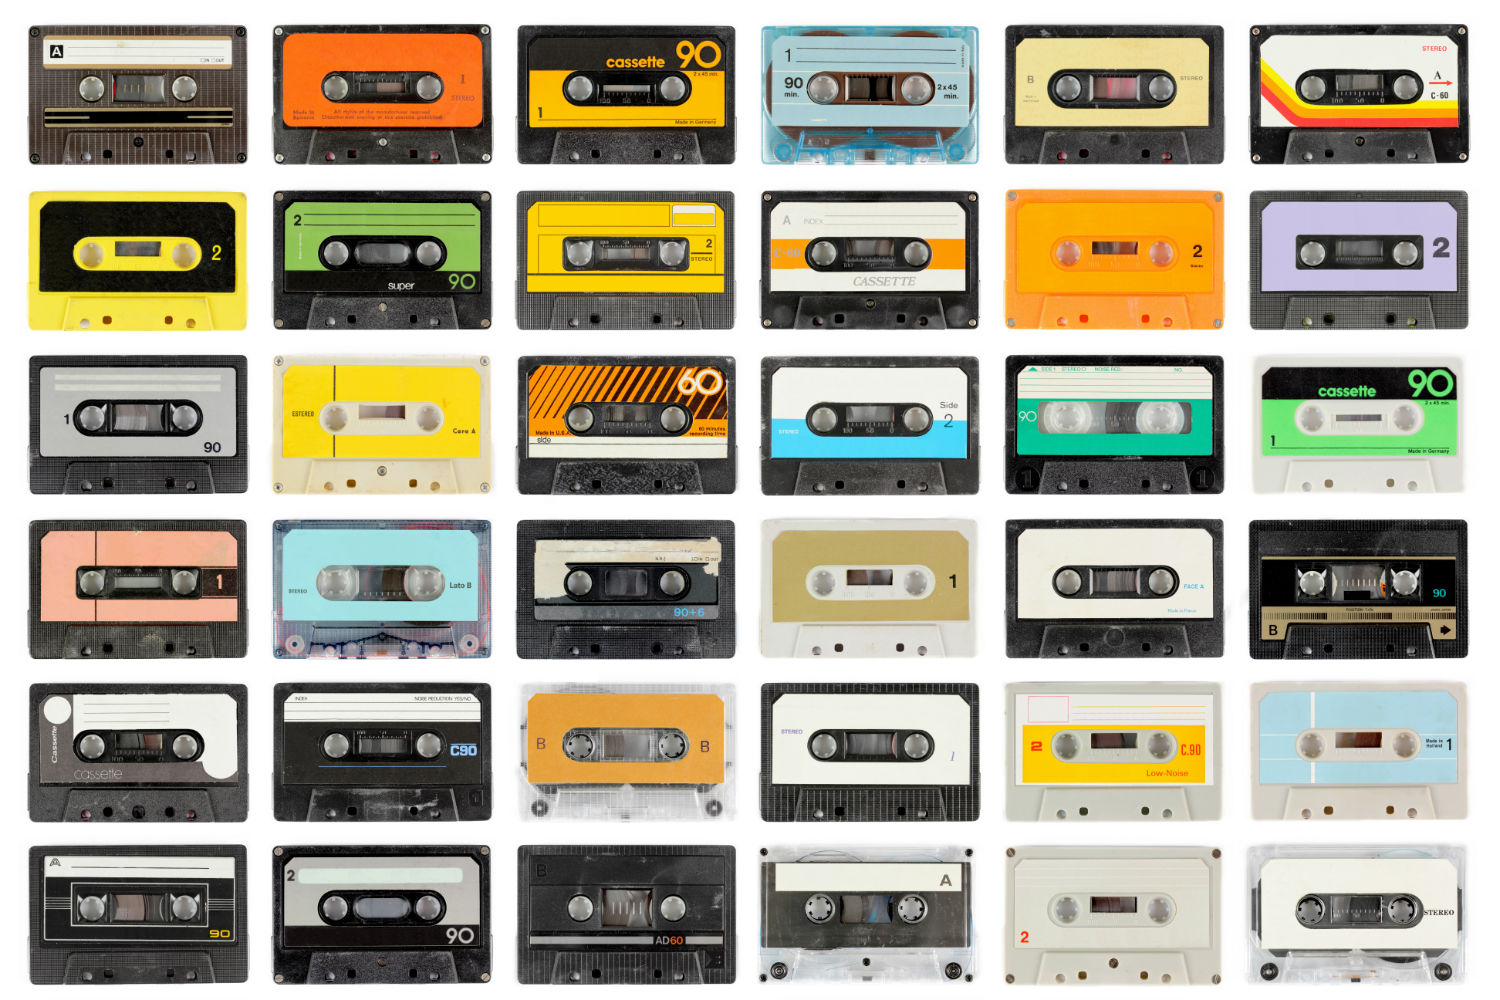 Forget vinyl, cassette tapes are the hippest new format ...